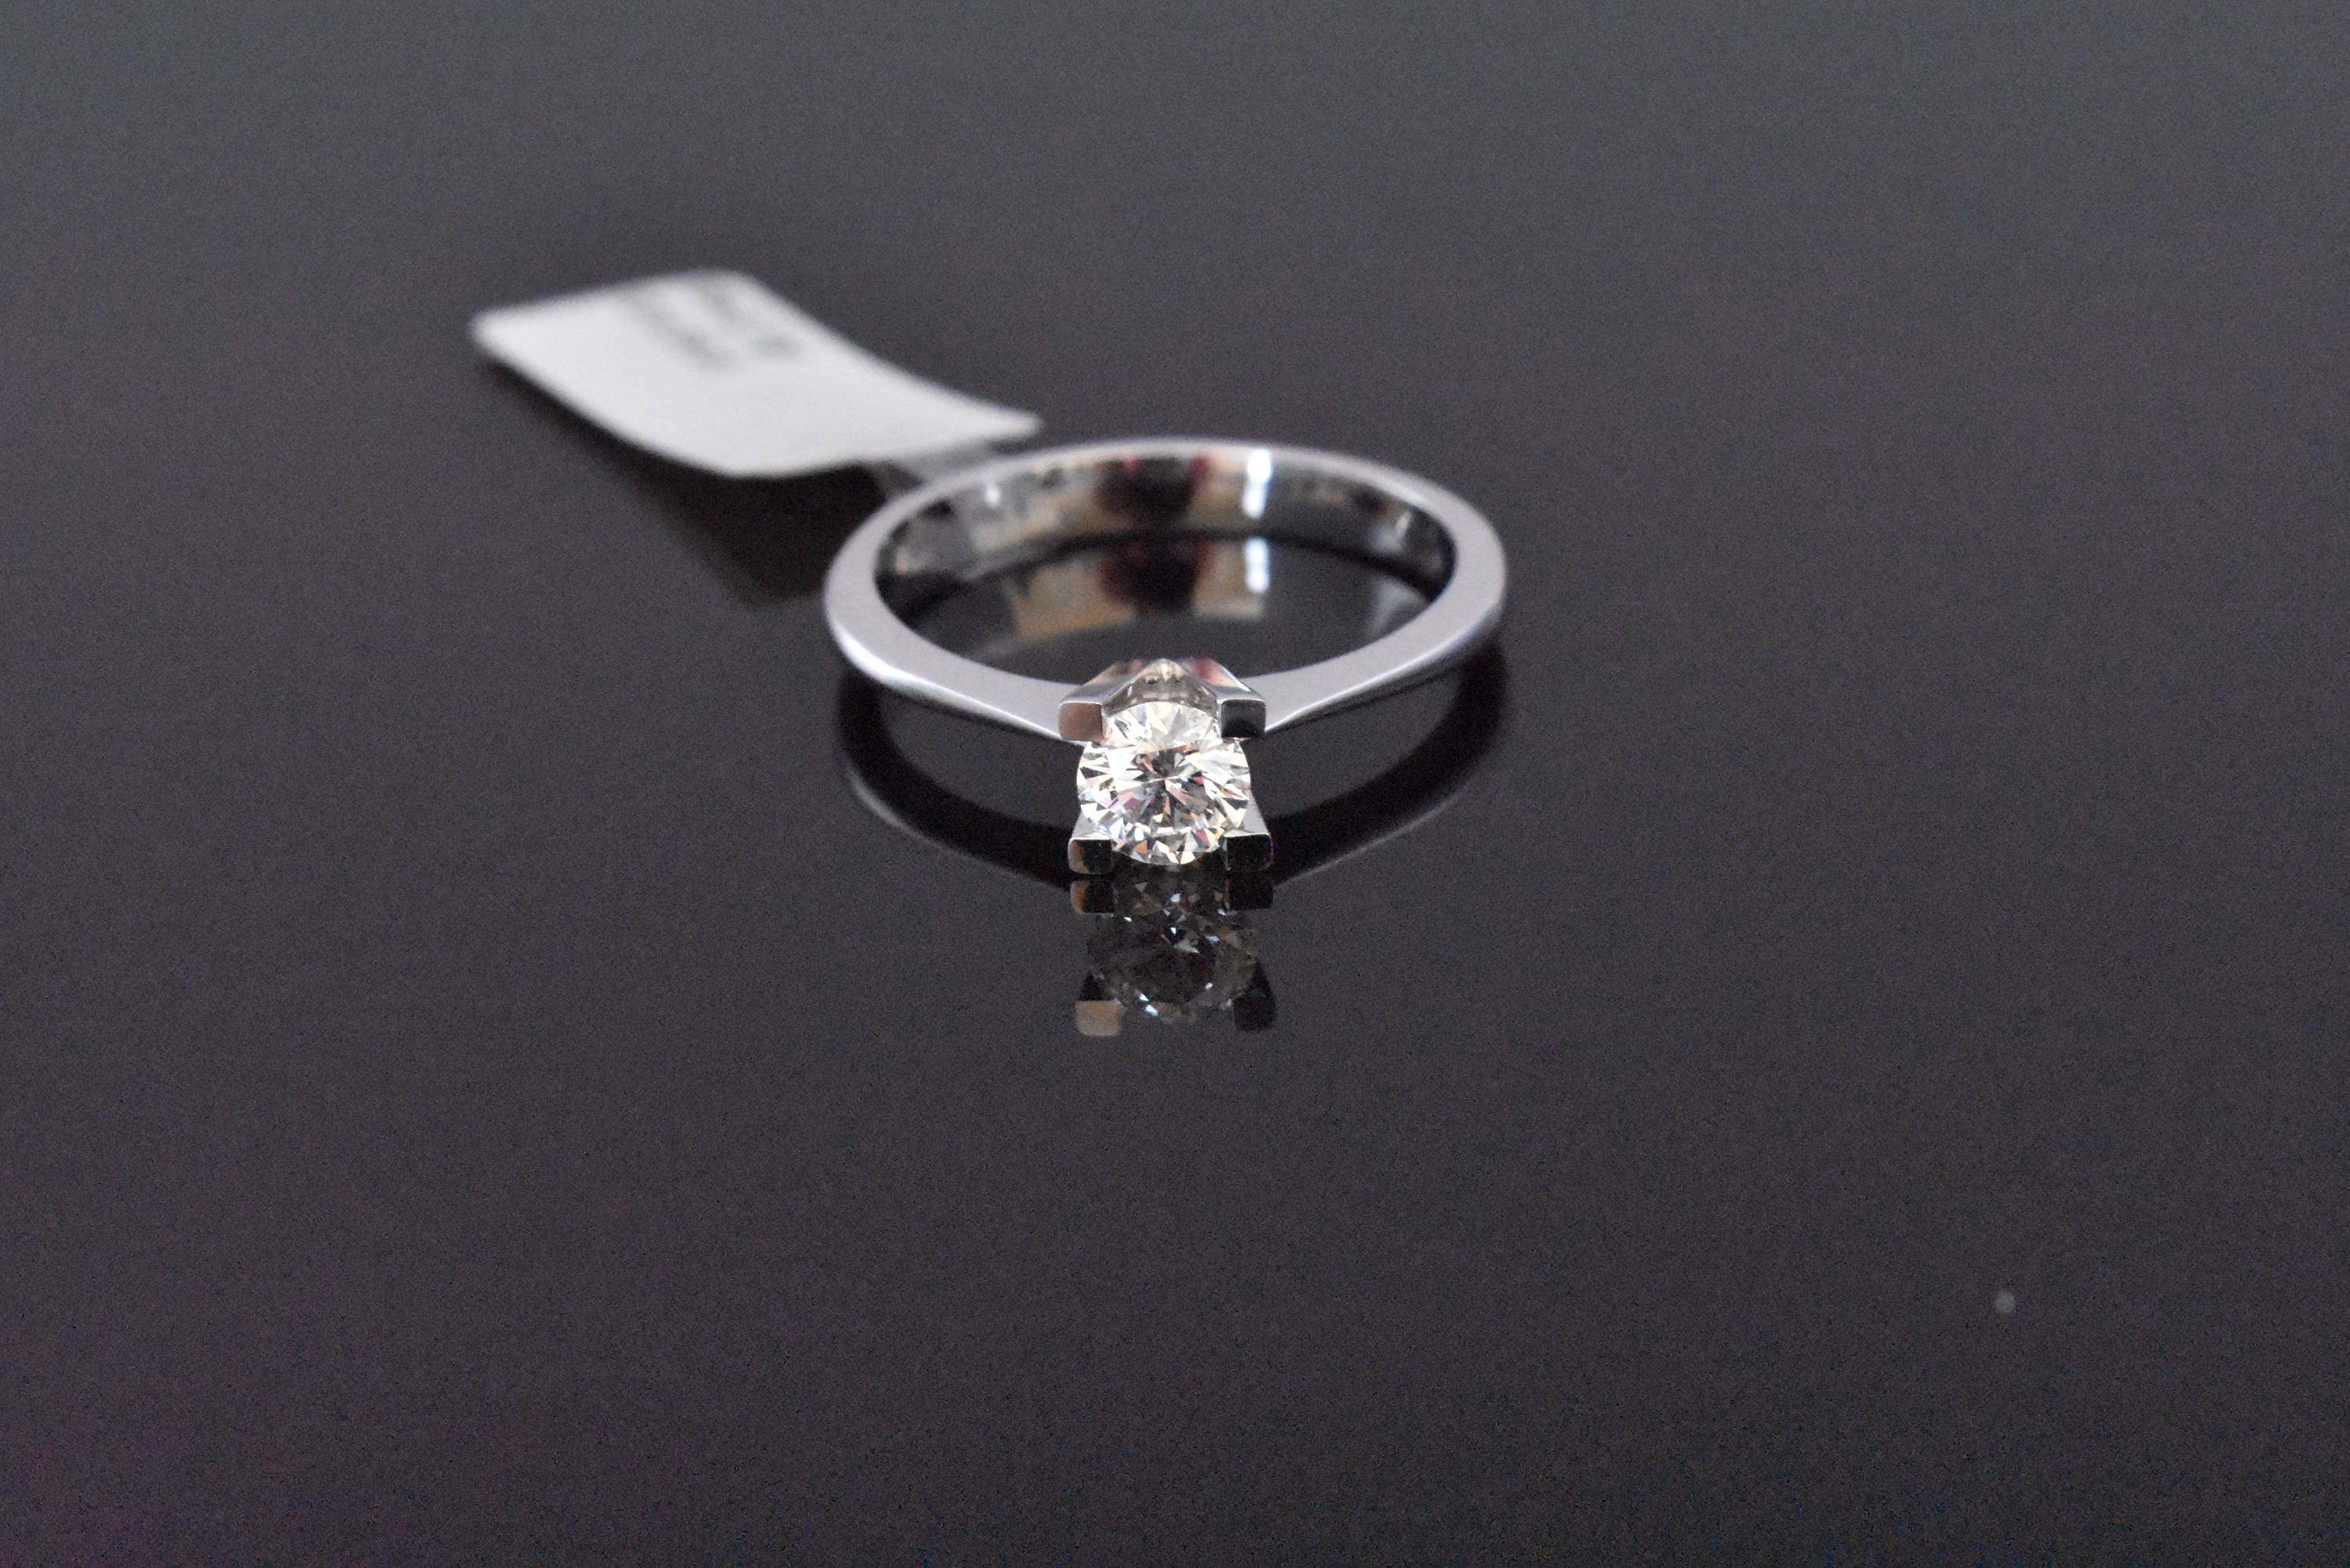 diamond handmade jewellers wedding dublin goldsmiths bespoke design rings ring campbell products